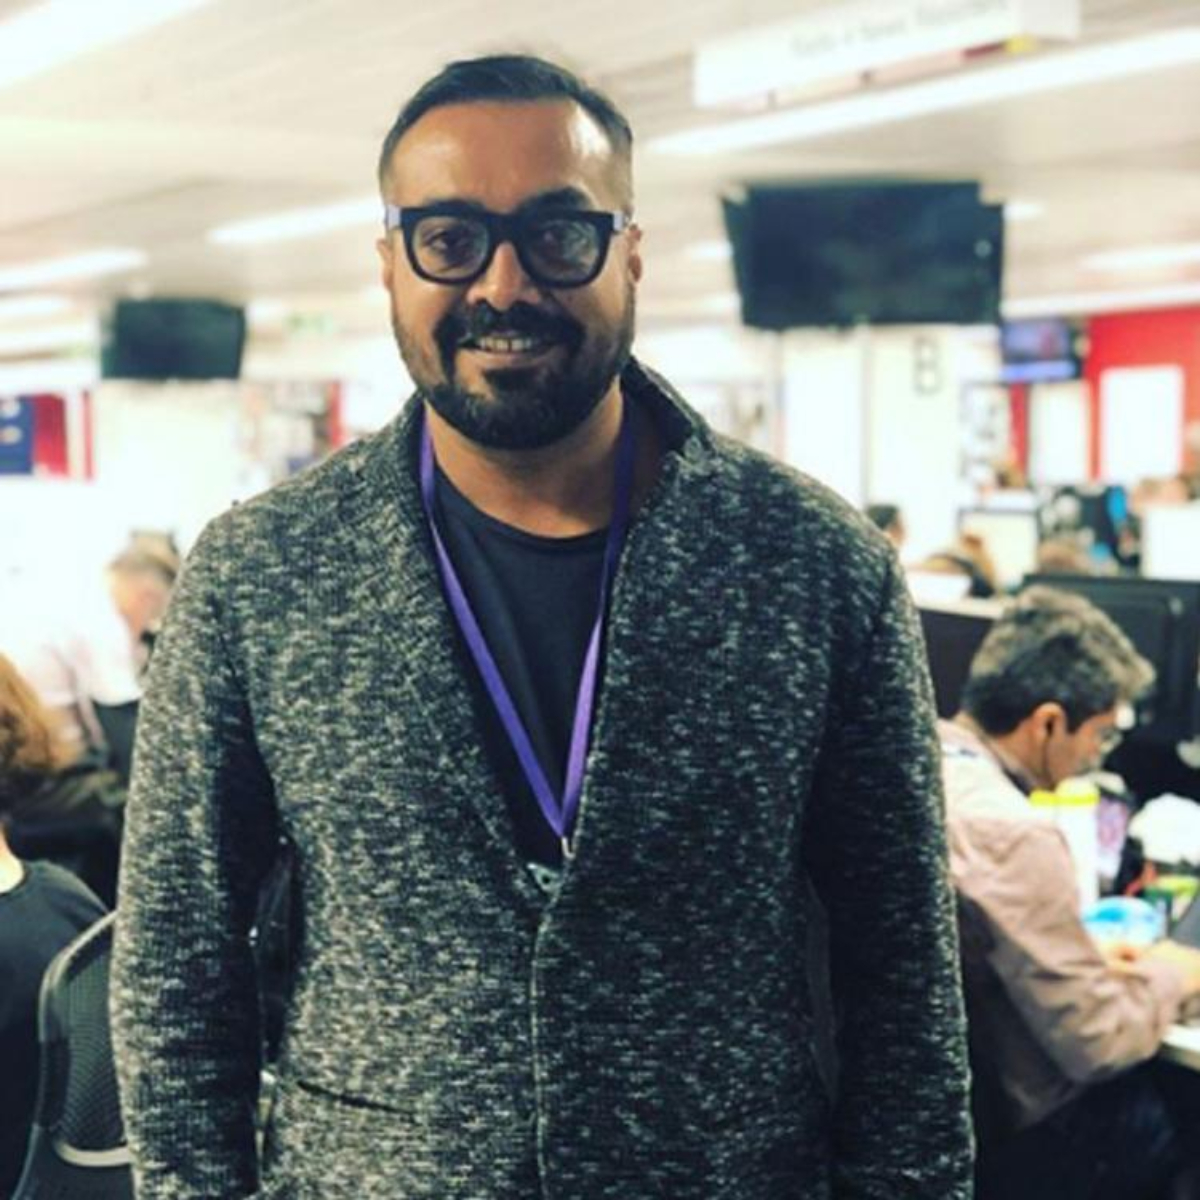 Anurag Kashyap strongly reacts to accusations made by Payal Ghosh, says 'Allegations against me are baseless'